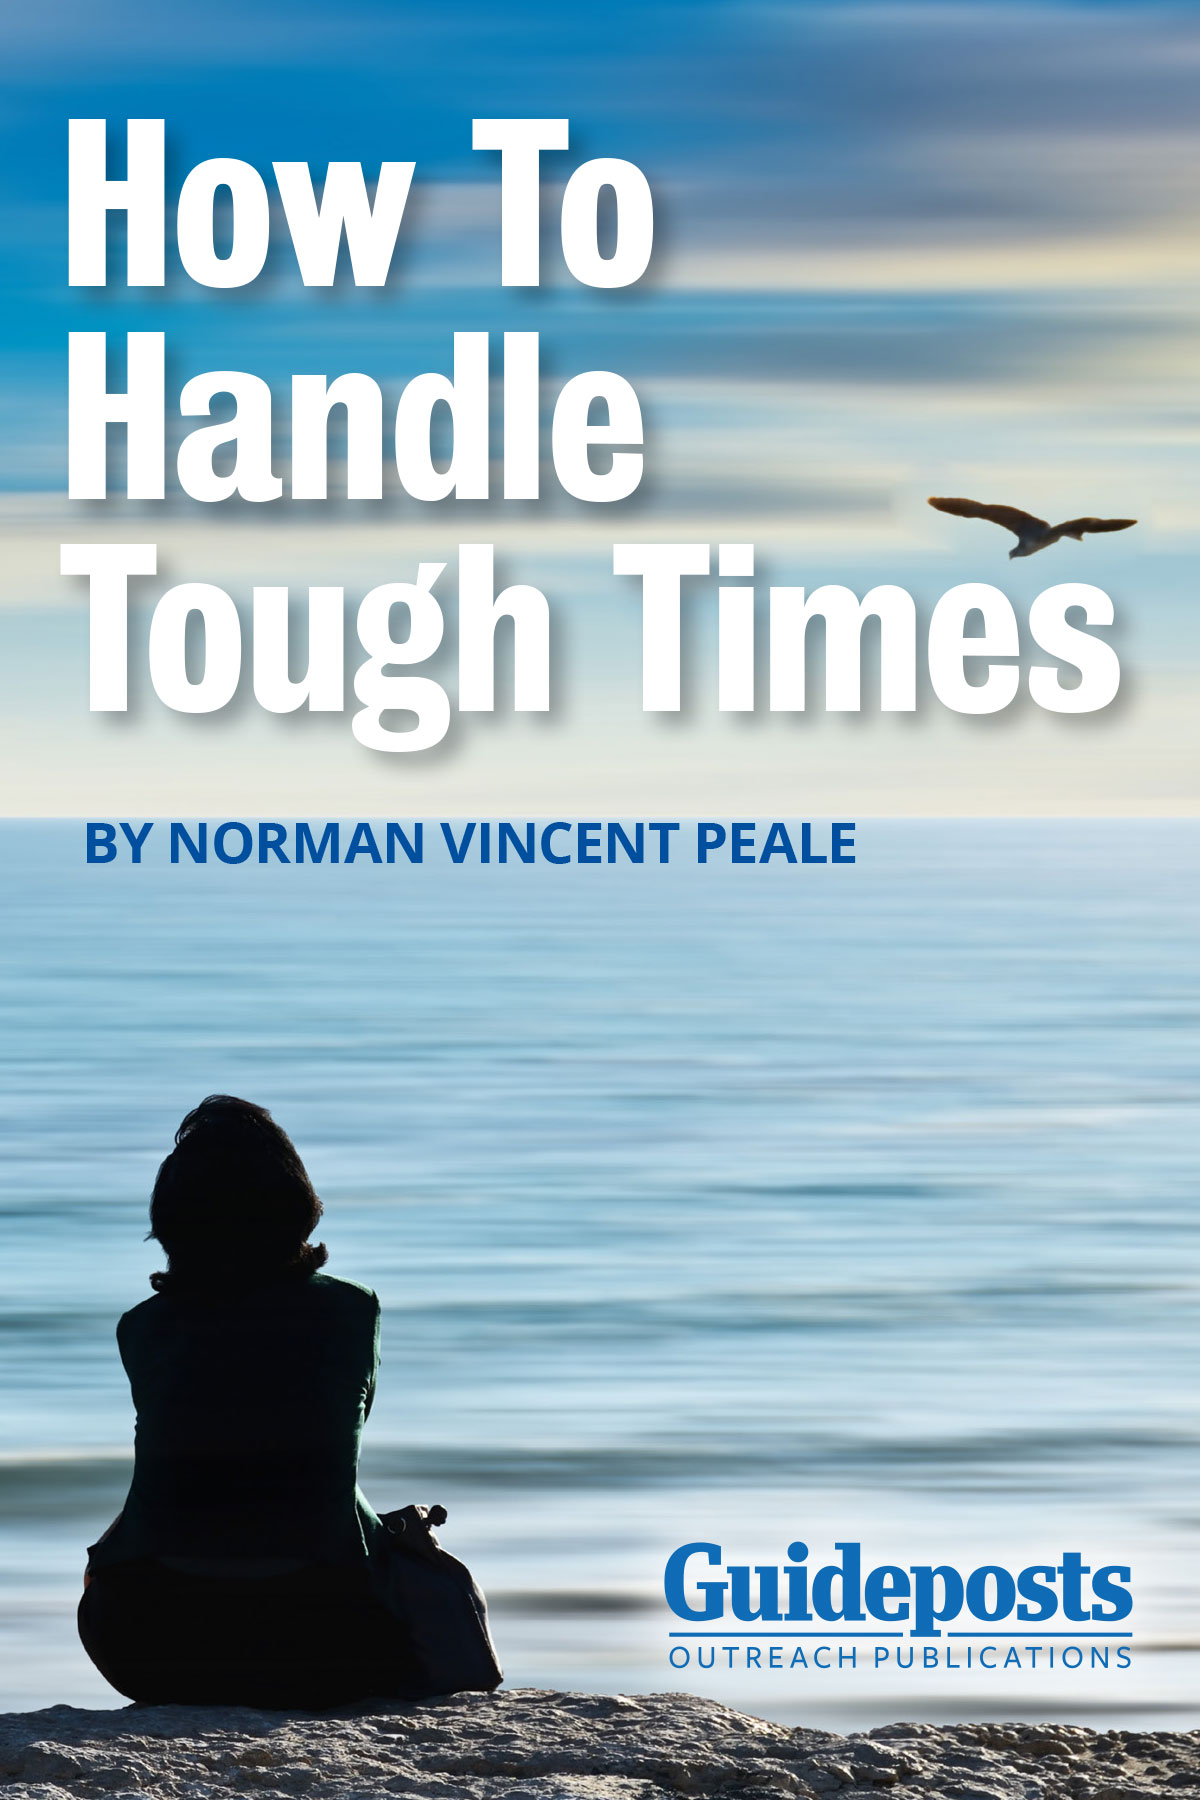 How To Handle Tough Times